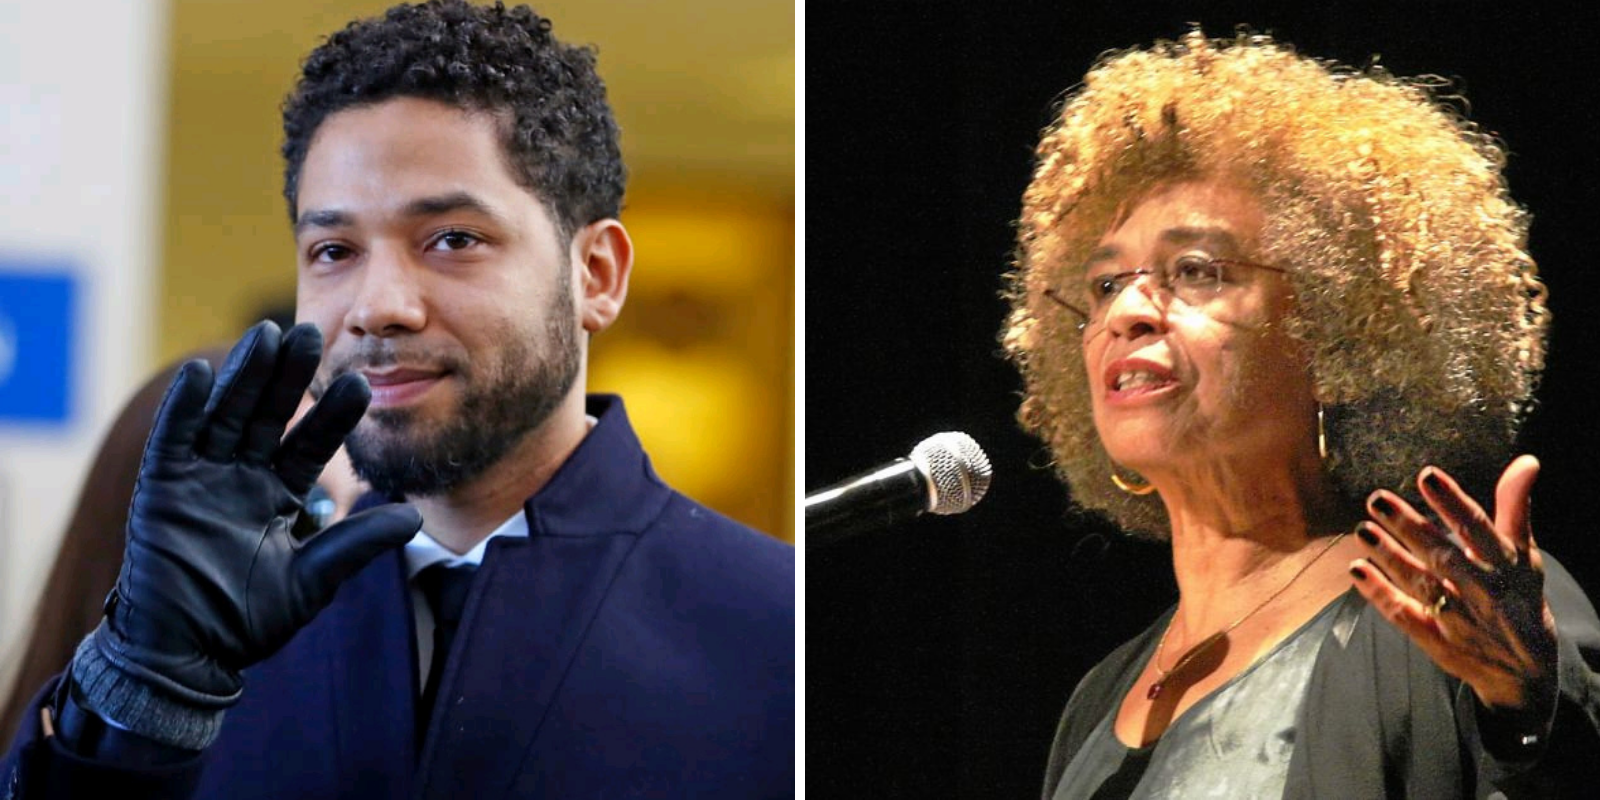 BLM activists demand 'justice' for disgraced actor Jussie Smollett 'and all targeted by police misconduct'